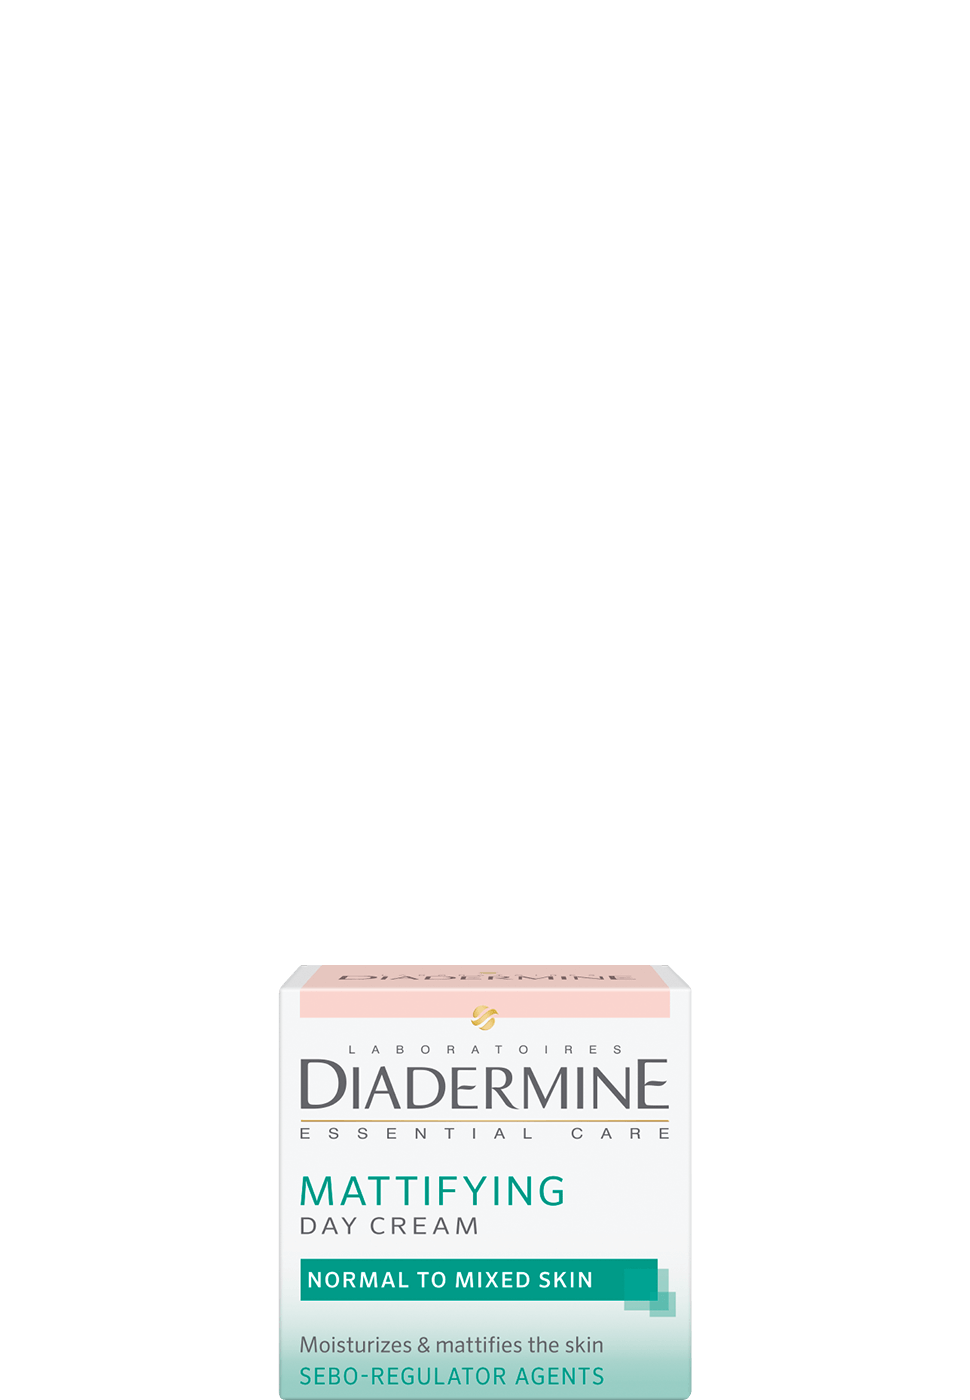 diadermine_com_essentials_mattifying_day_cream_970x1400